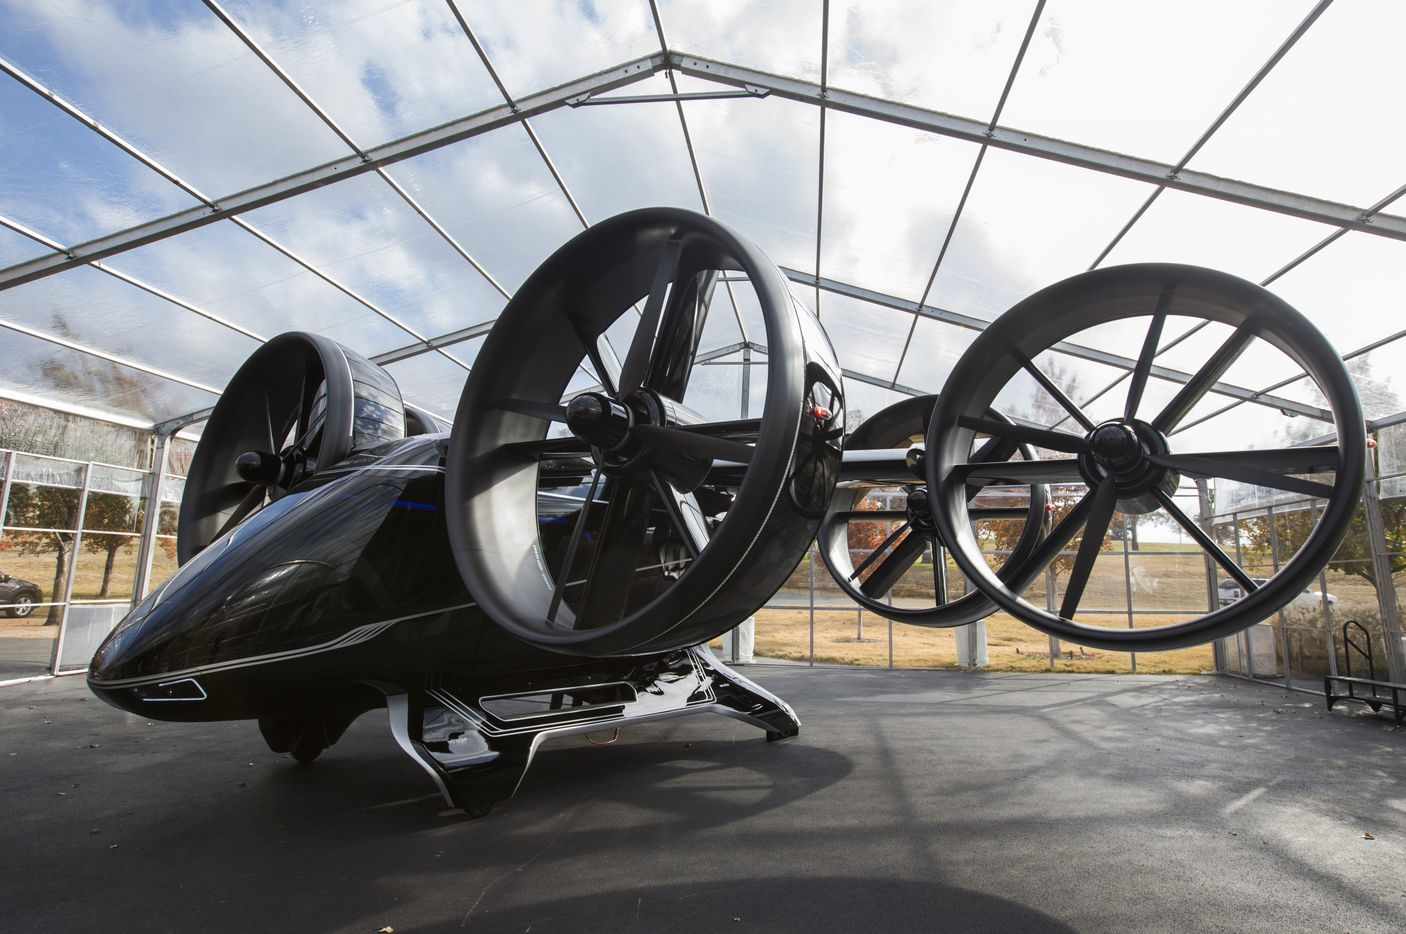 Attendees of the summit at Circle T Ranch got an up-close look at prototypes, including the Bell Nexus air taxi. (Ashley Landis/The Dallas Morning News)